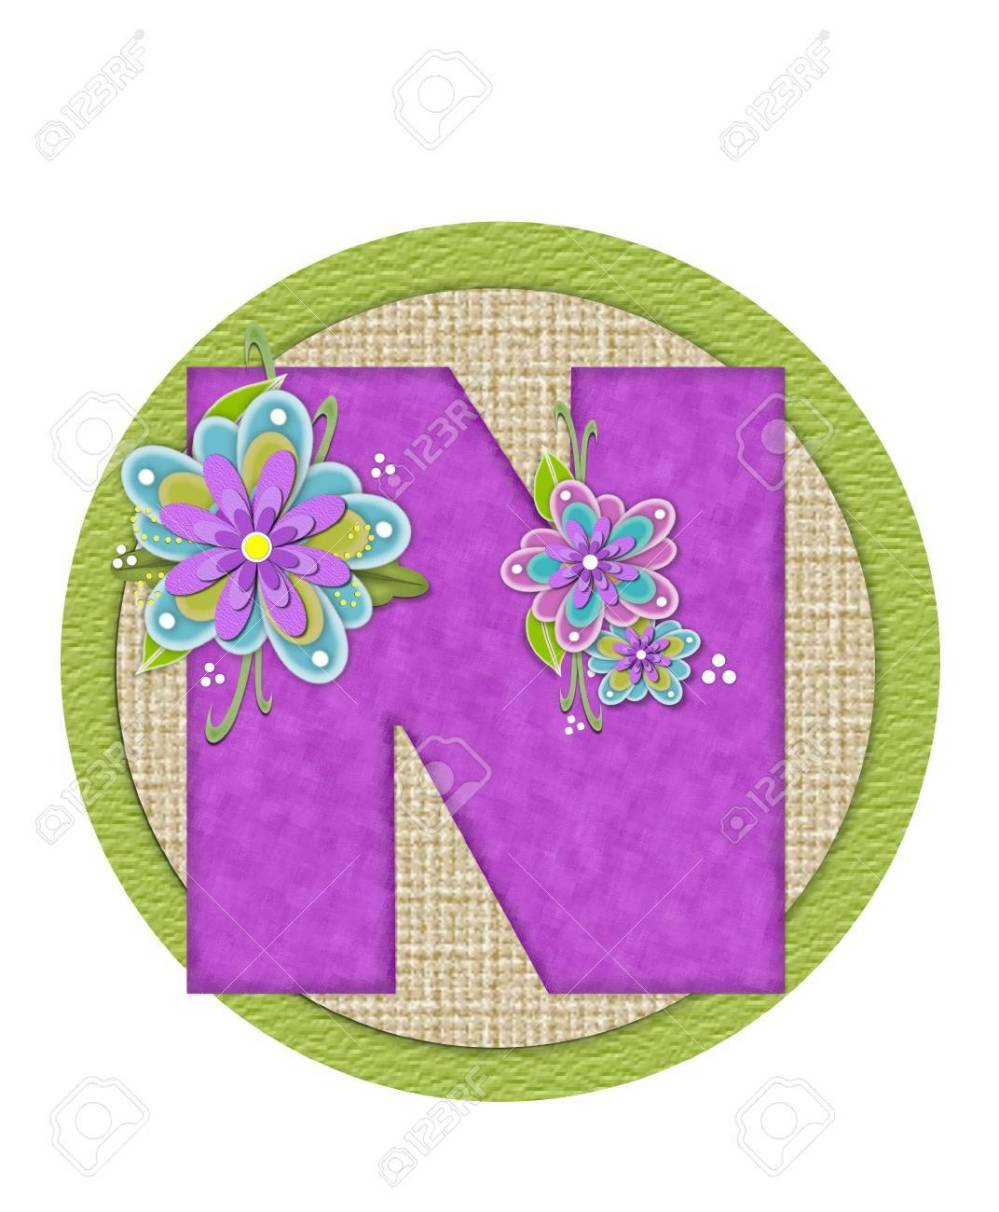 medium resolution of imagens the letter n in the alphabet set backyard bouquet is lilac and decorated with layered flowers in blue and lilac